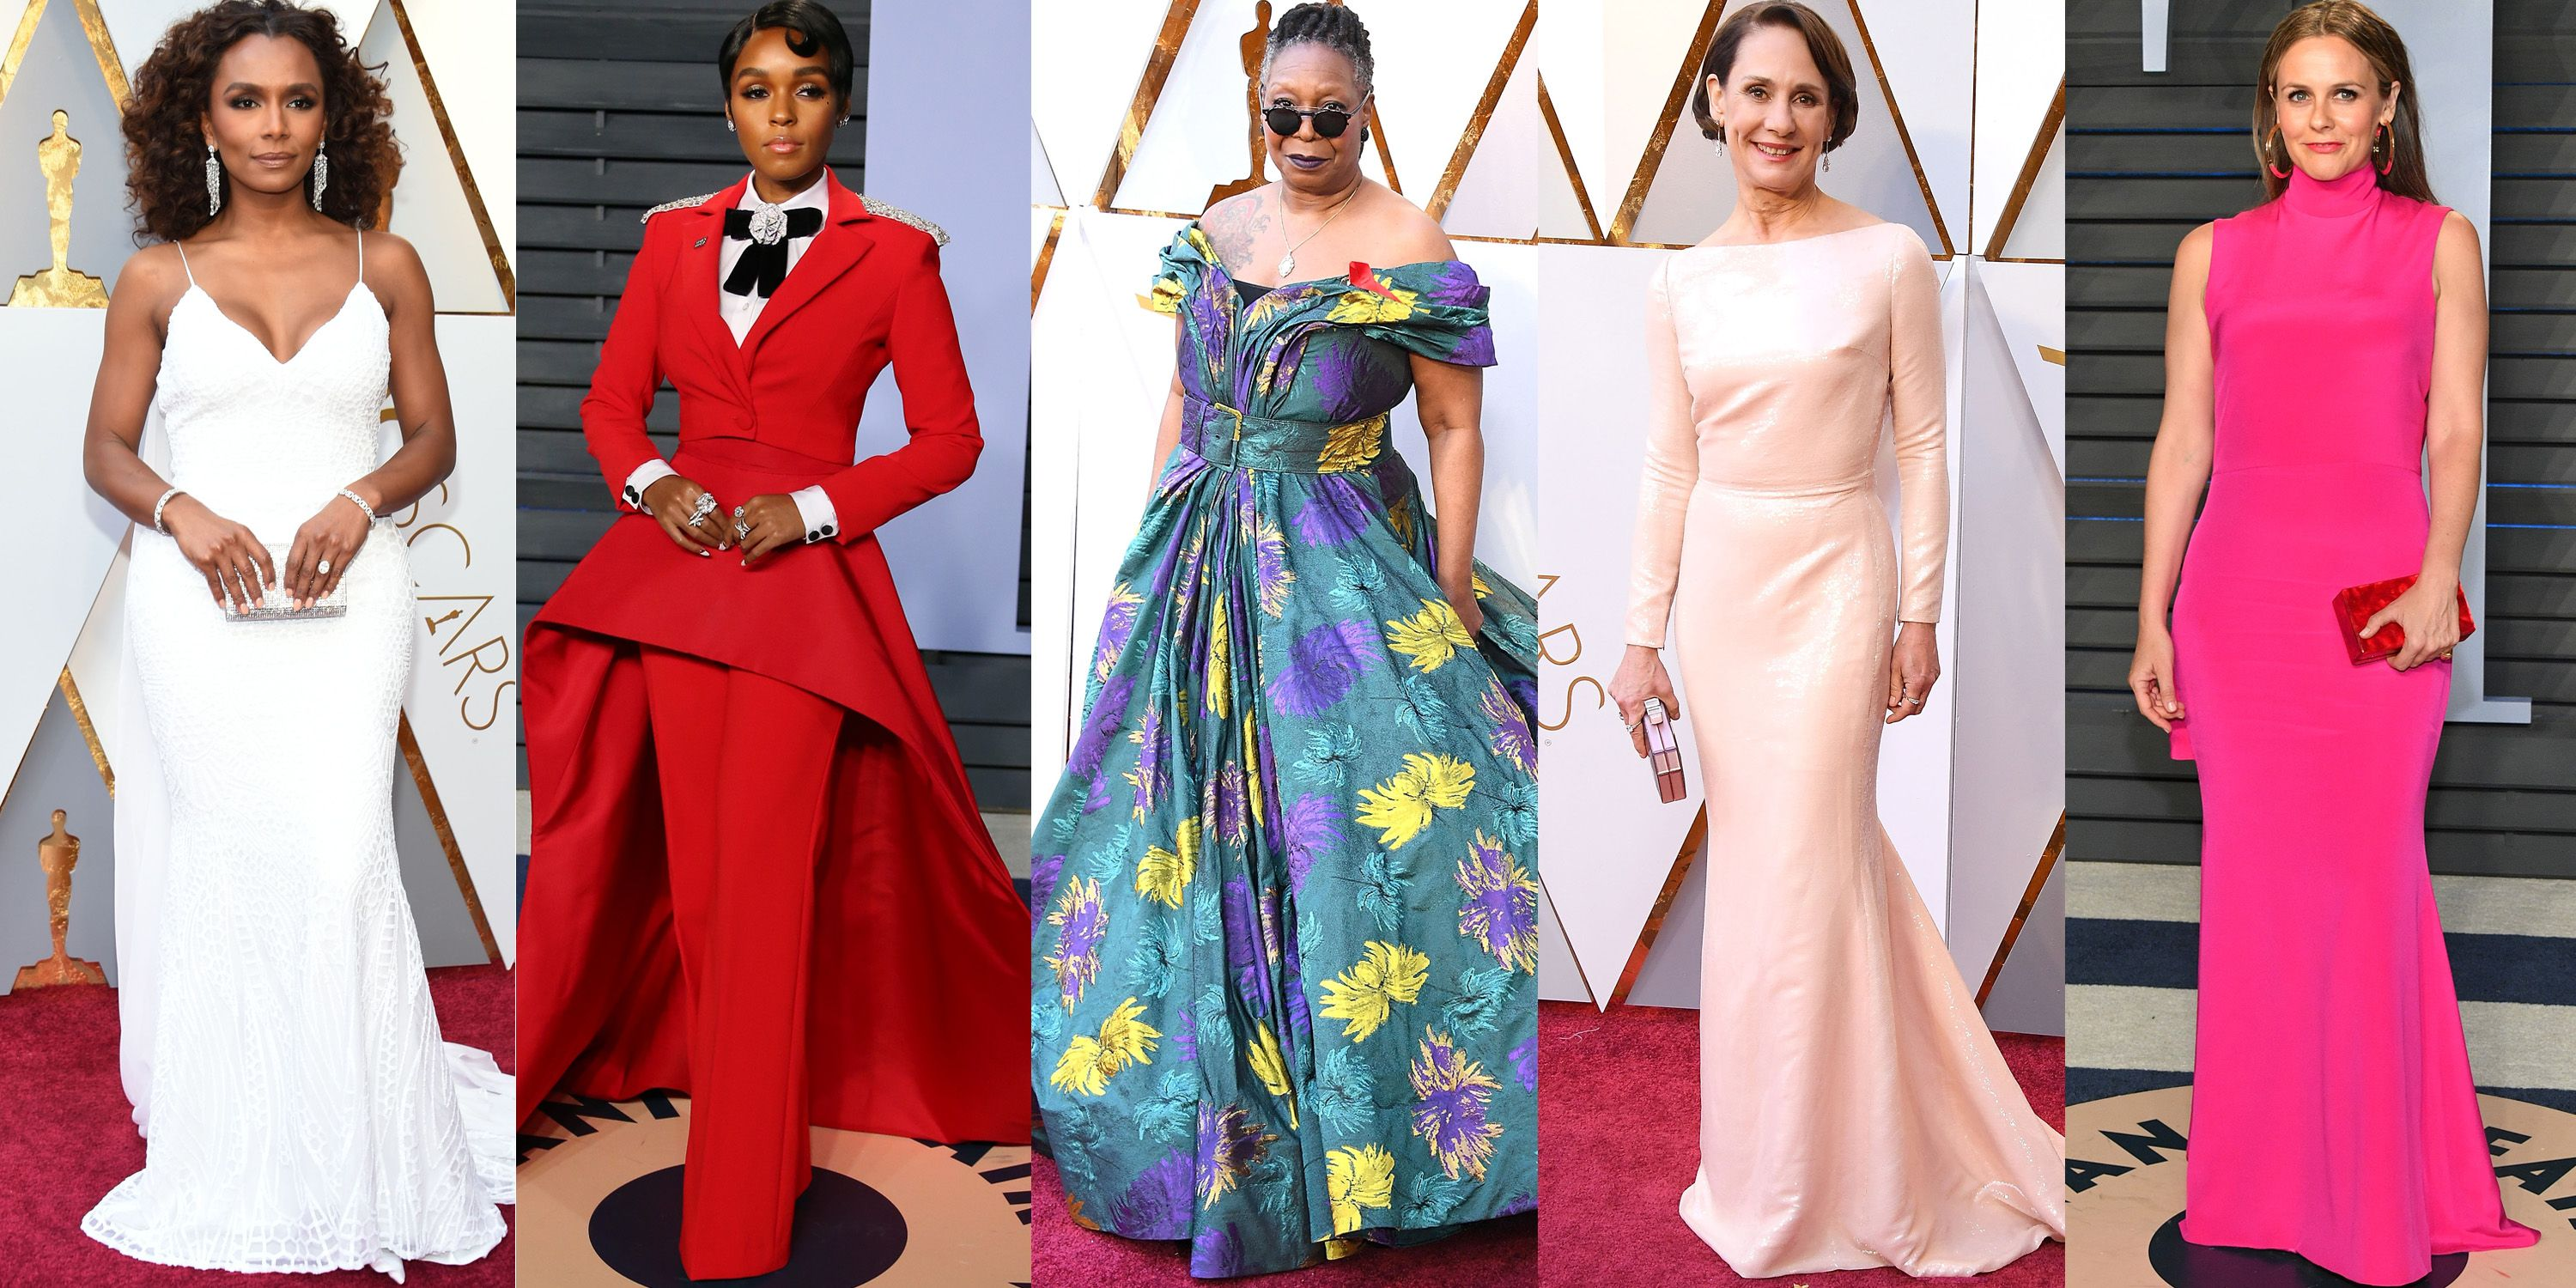 Christian Siriano Dressed 17 Women At This Years Oscars